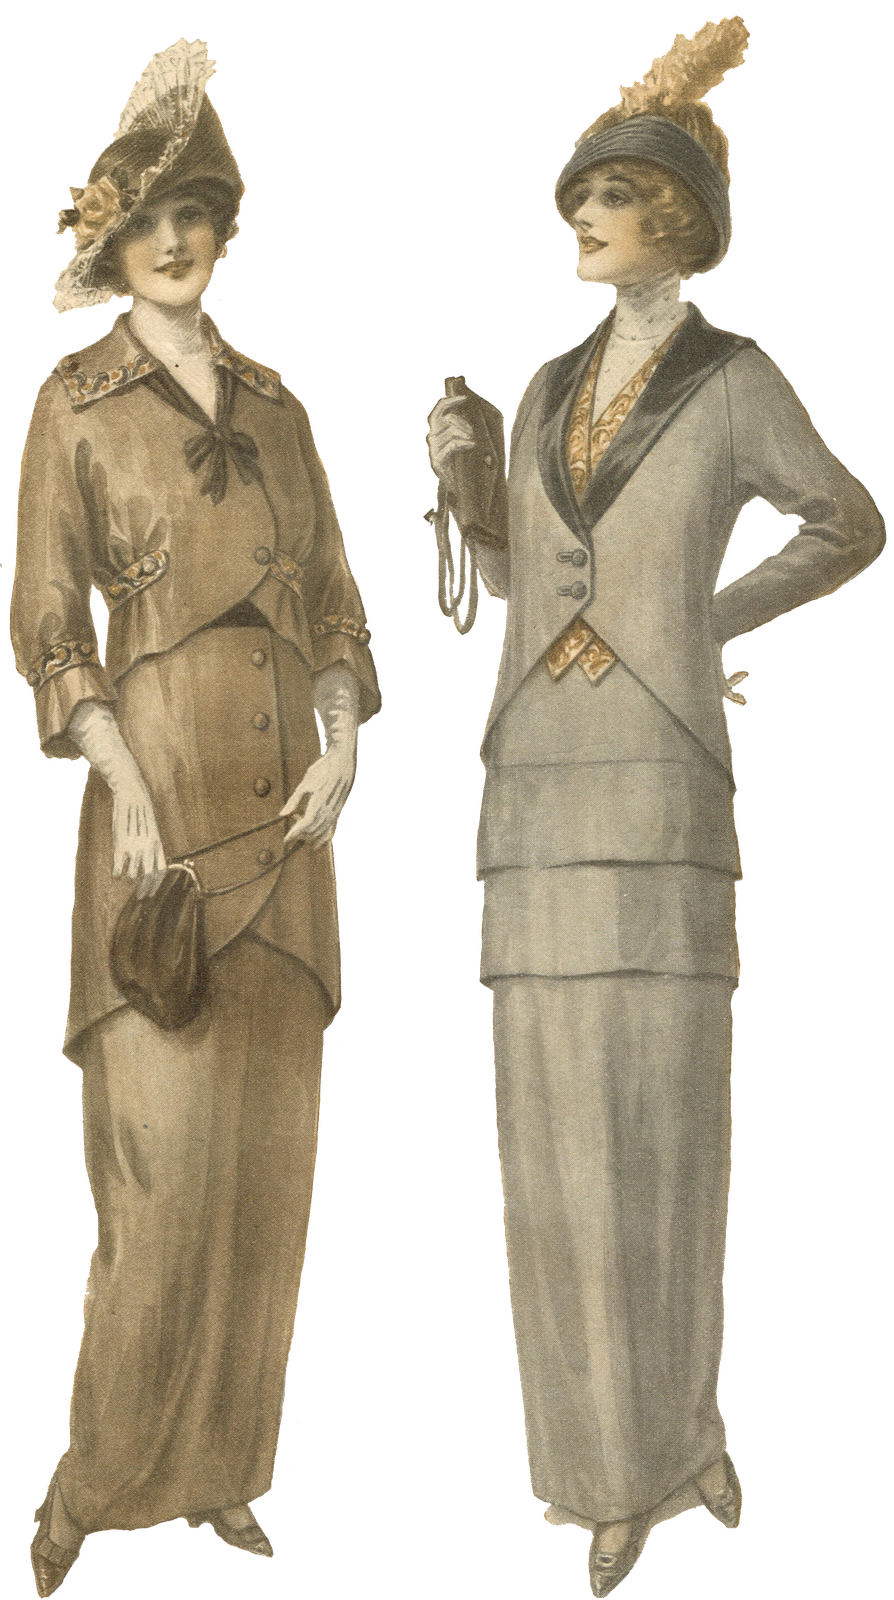 Fashion clipart lady suit. Antique graphics wednesday s